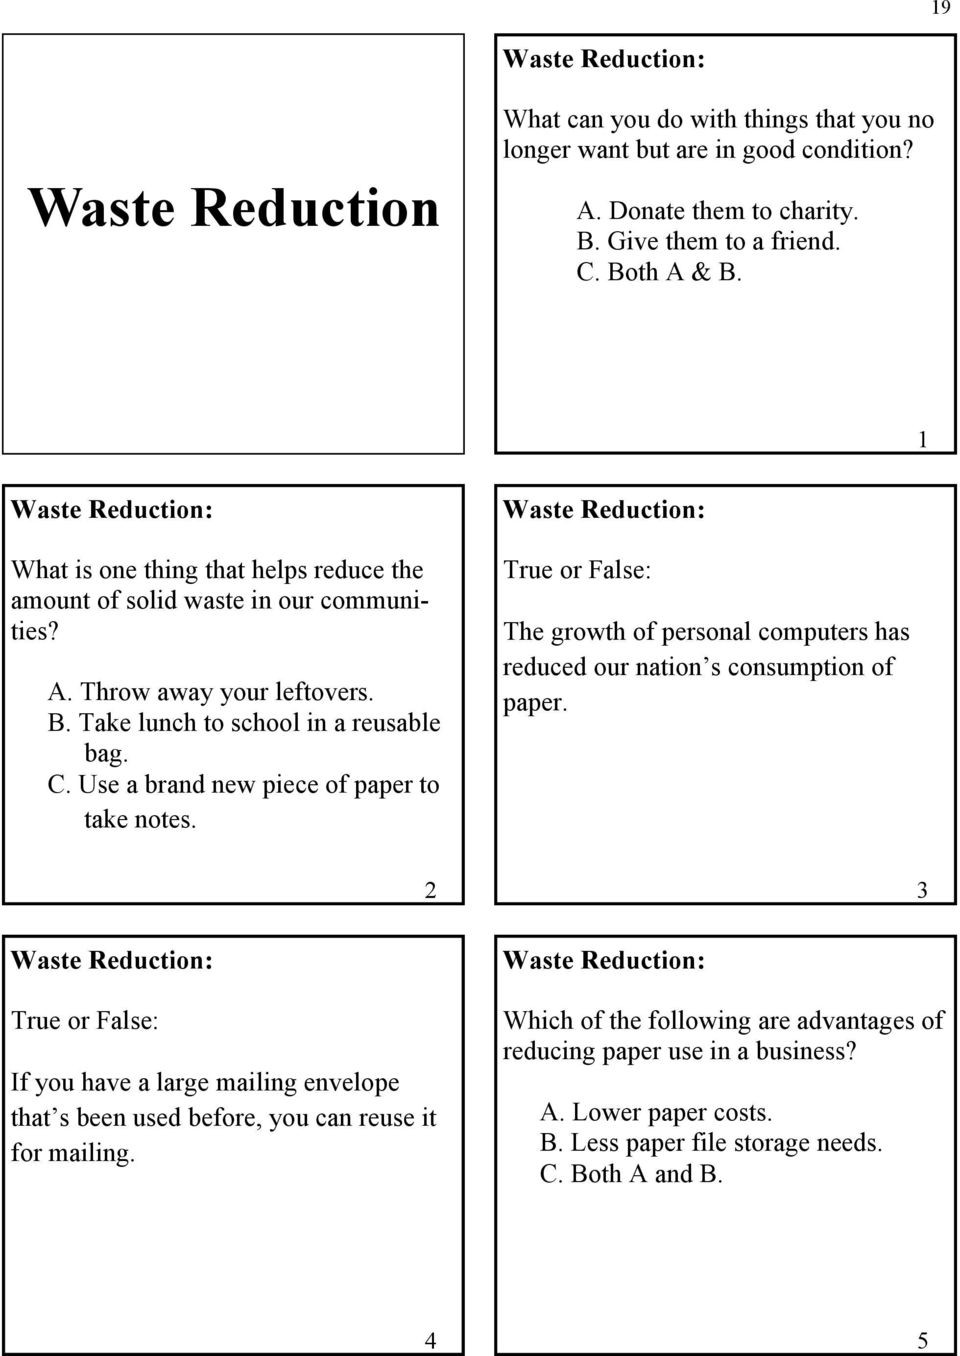 Use a brand new piece of paper to take notes. Waste Reduction: The growth of personal computers has reduced our nation s consumption of paper.